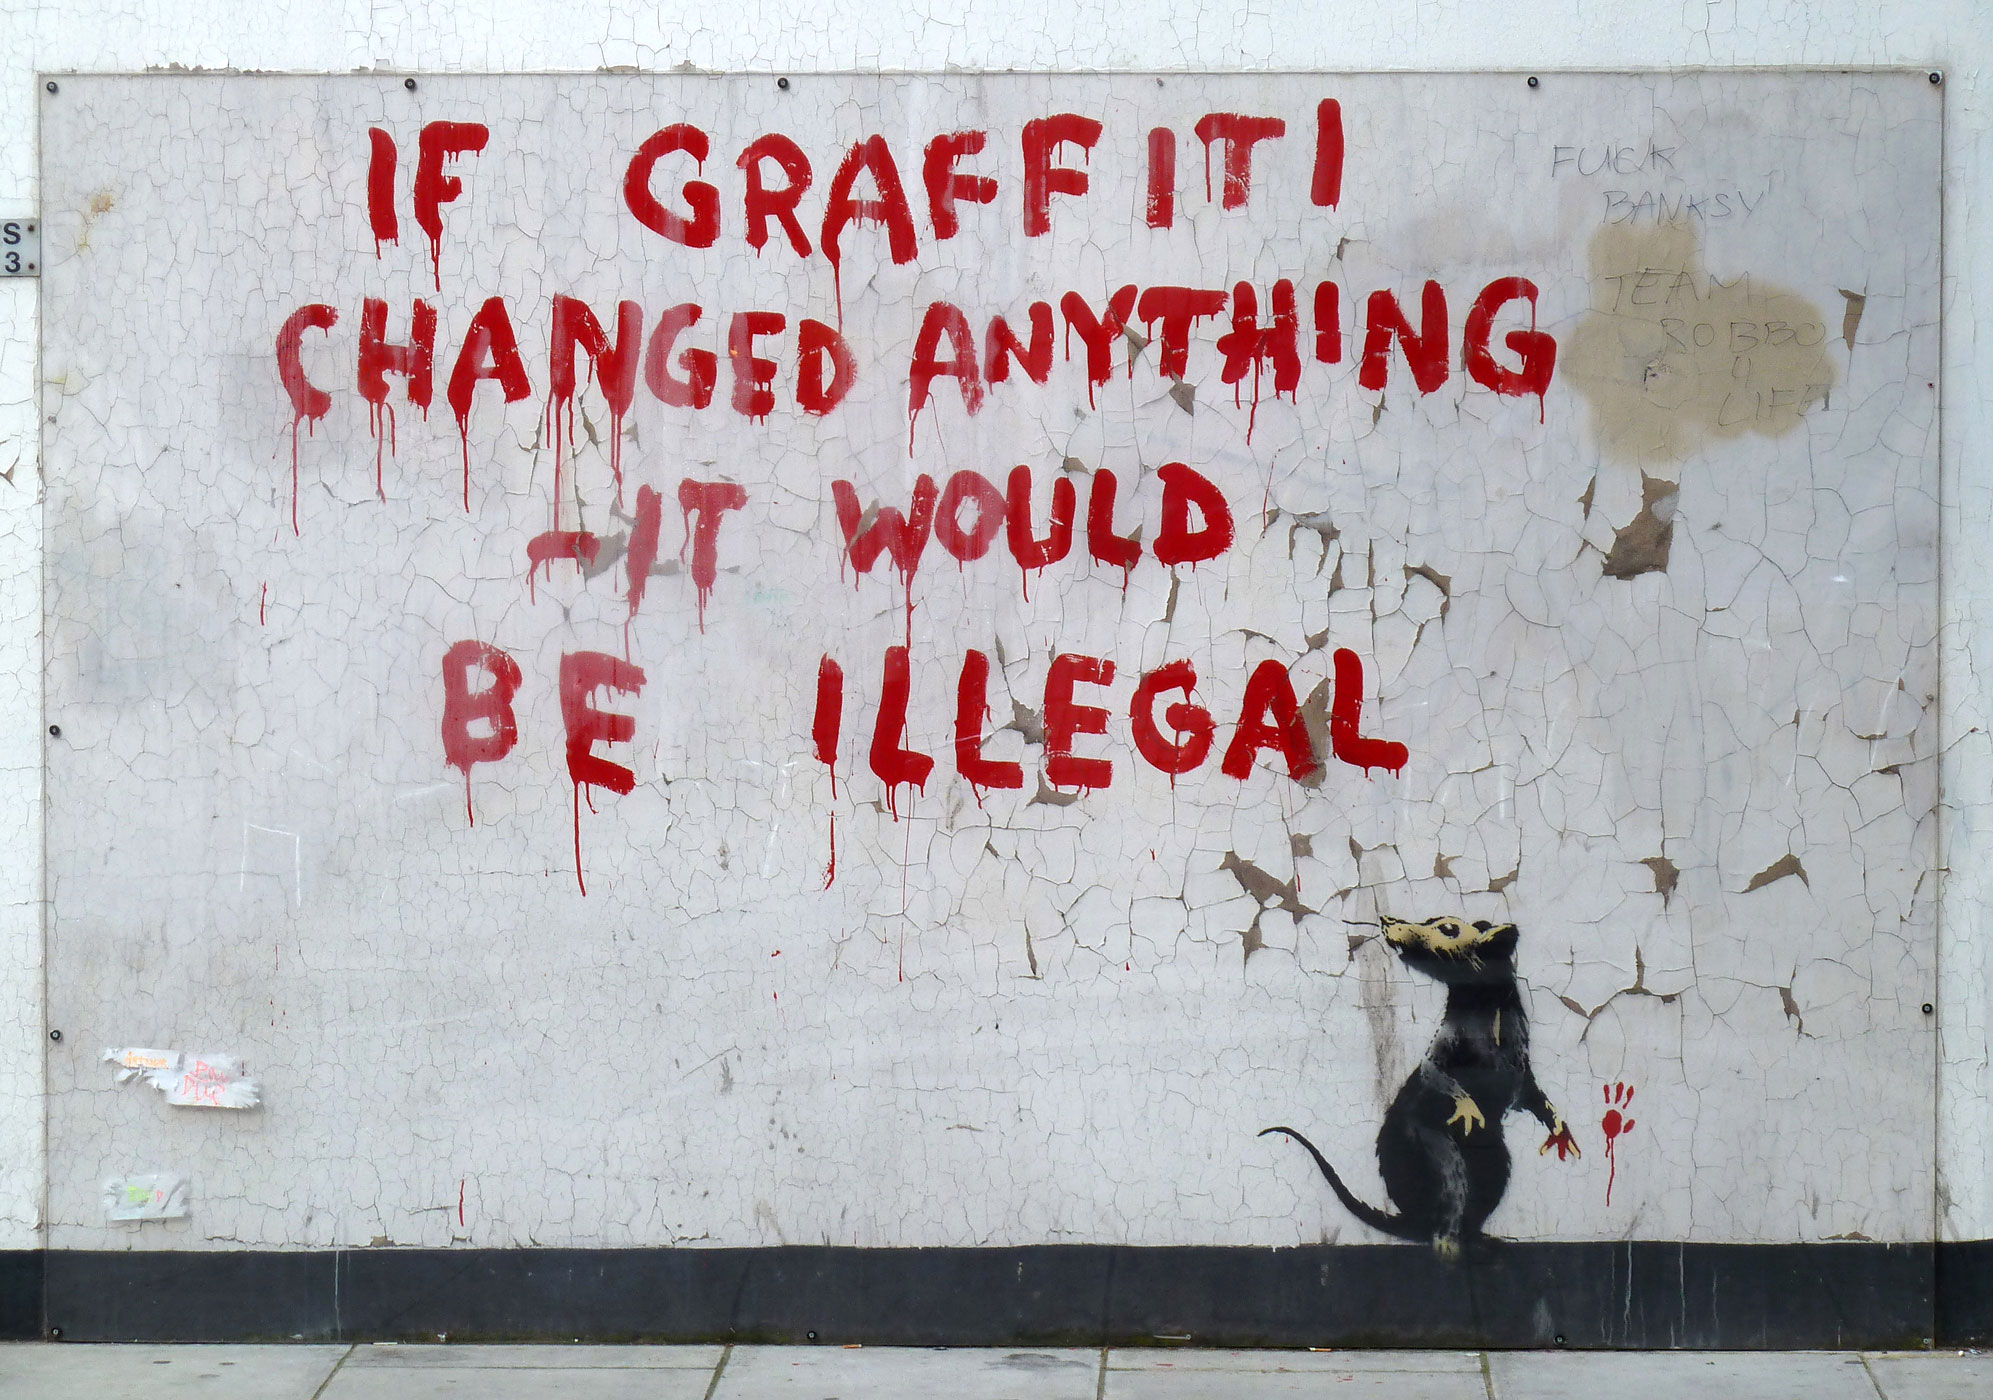 A Banksy appears in the neighborhood of Fitzrovia in London, England on October 6, 2011.